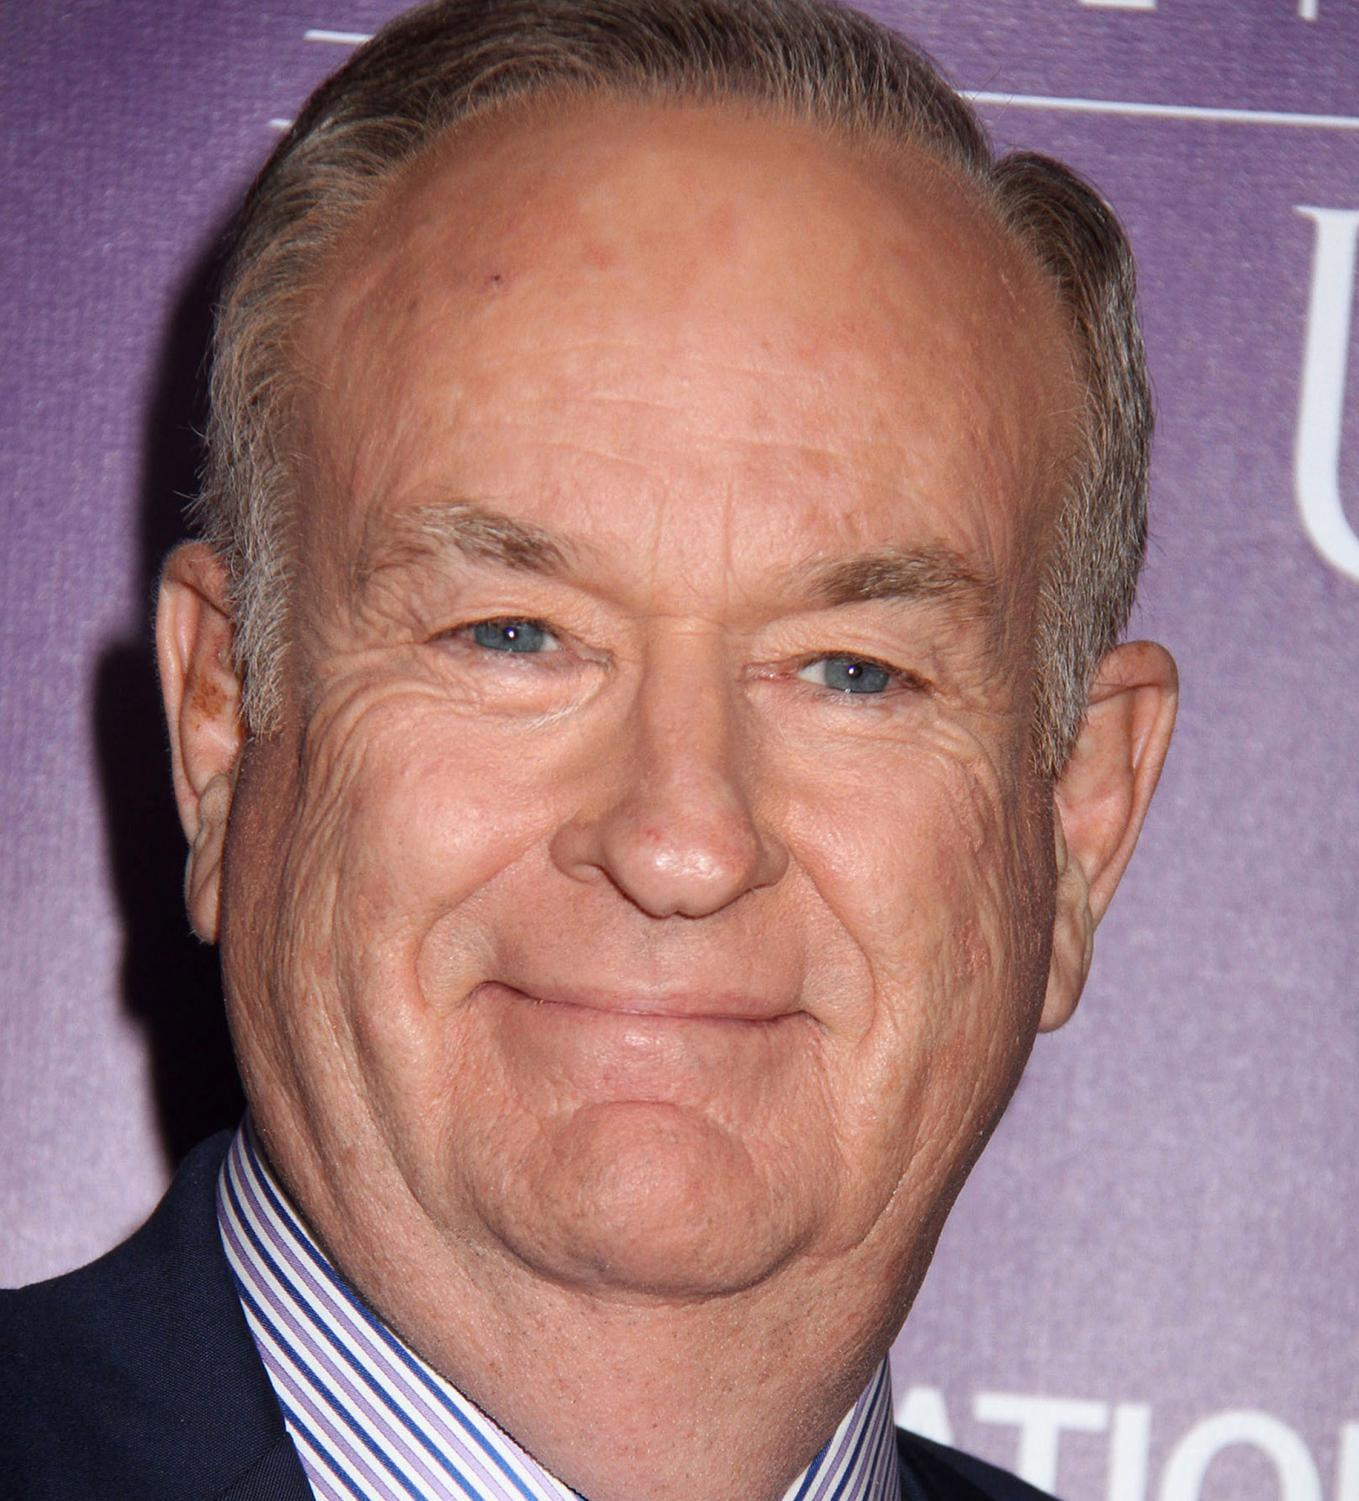 Opinion columnist Tanner Schrad discusses the tendency to politicize sexual assaults in the news, such as the claims leveled at conservative pundit Bill O'Reilly.